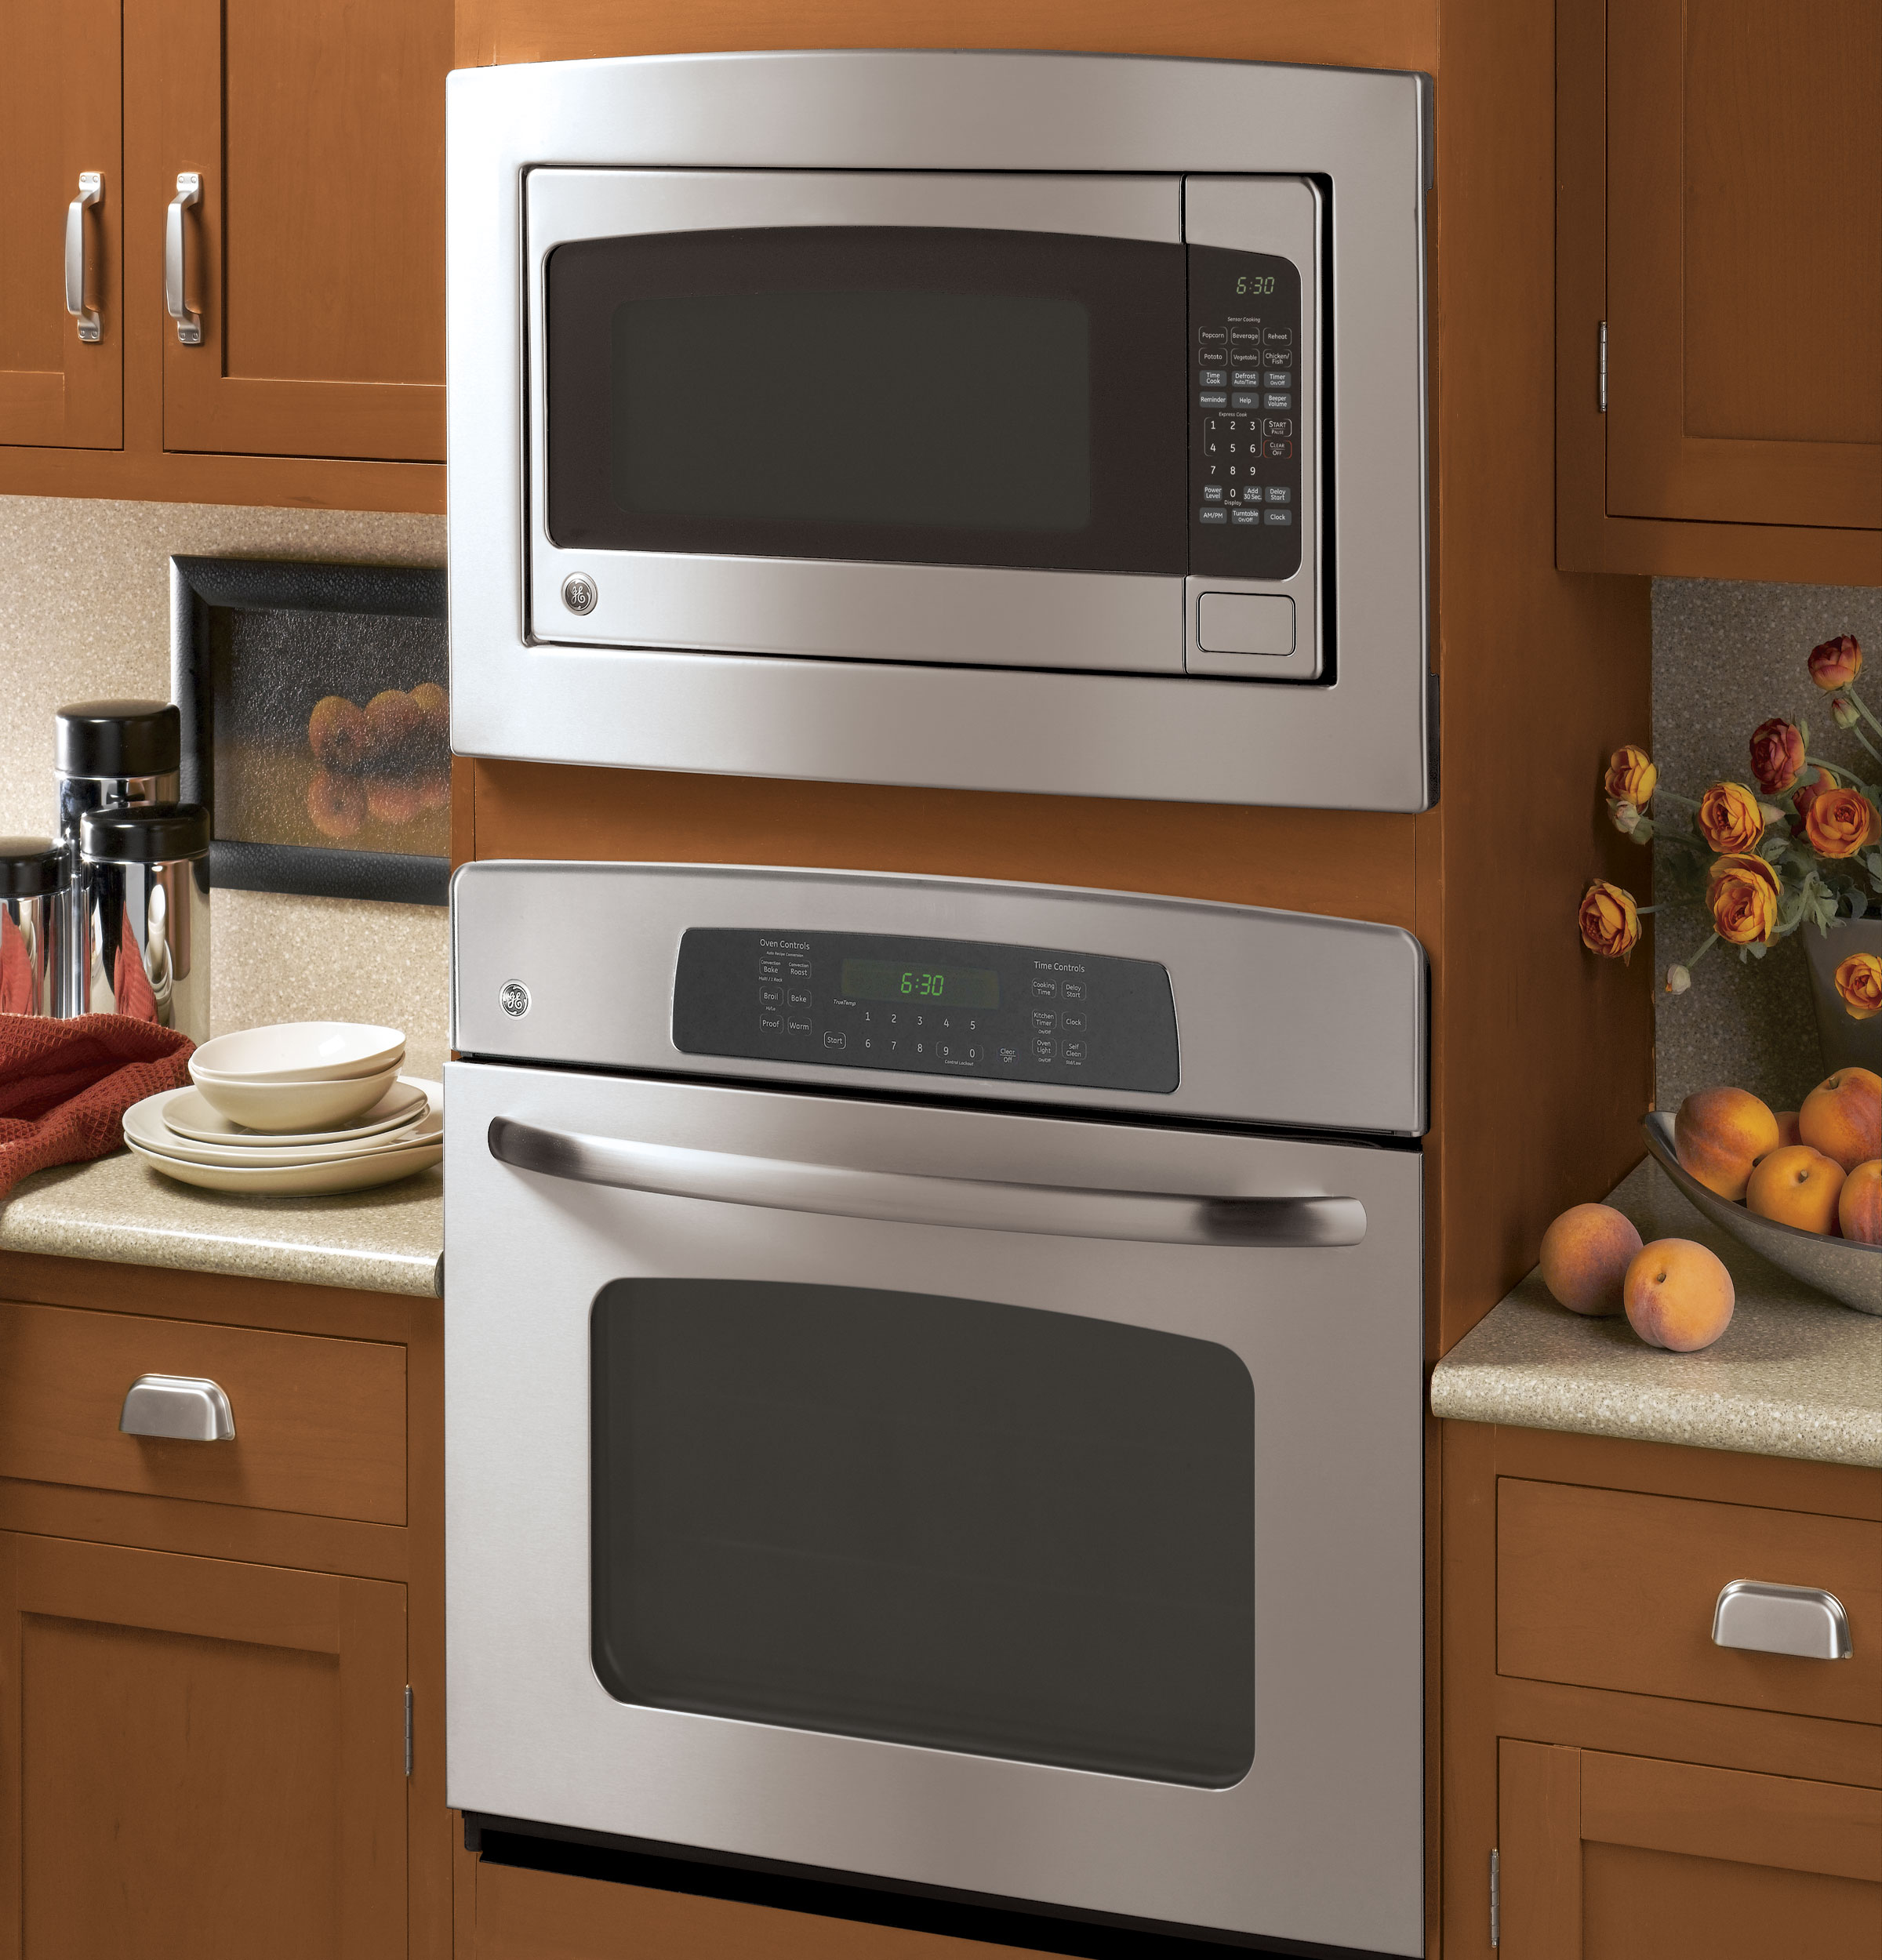 Kenmore Countertop Microwave With Trim Kit : JX2030SMSS - Microwave Trim Kit - The Monogram Collection